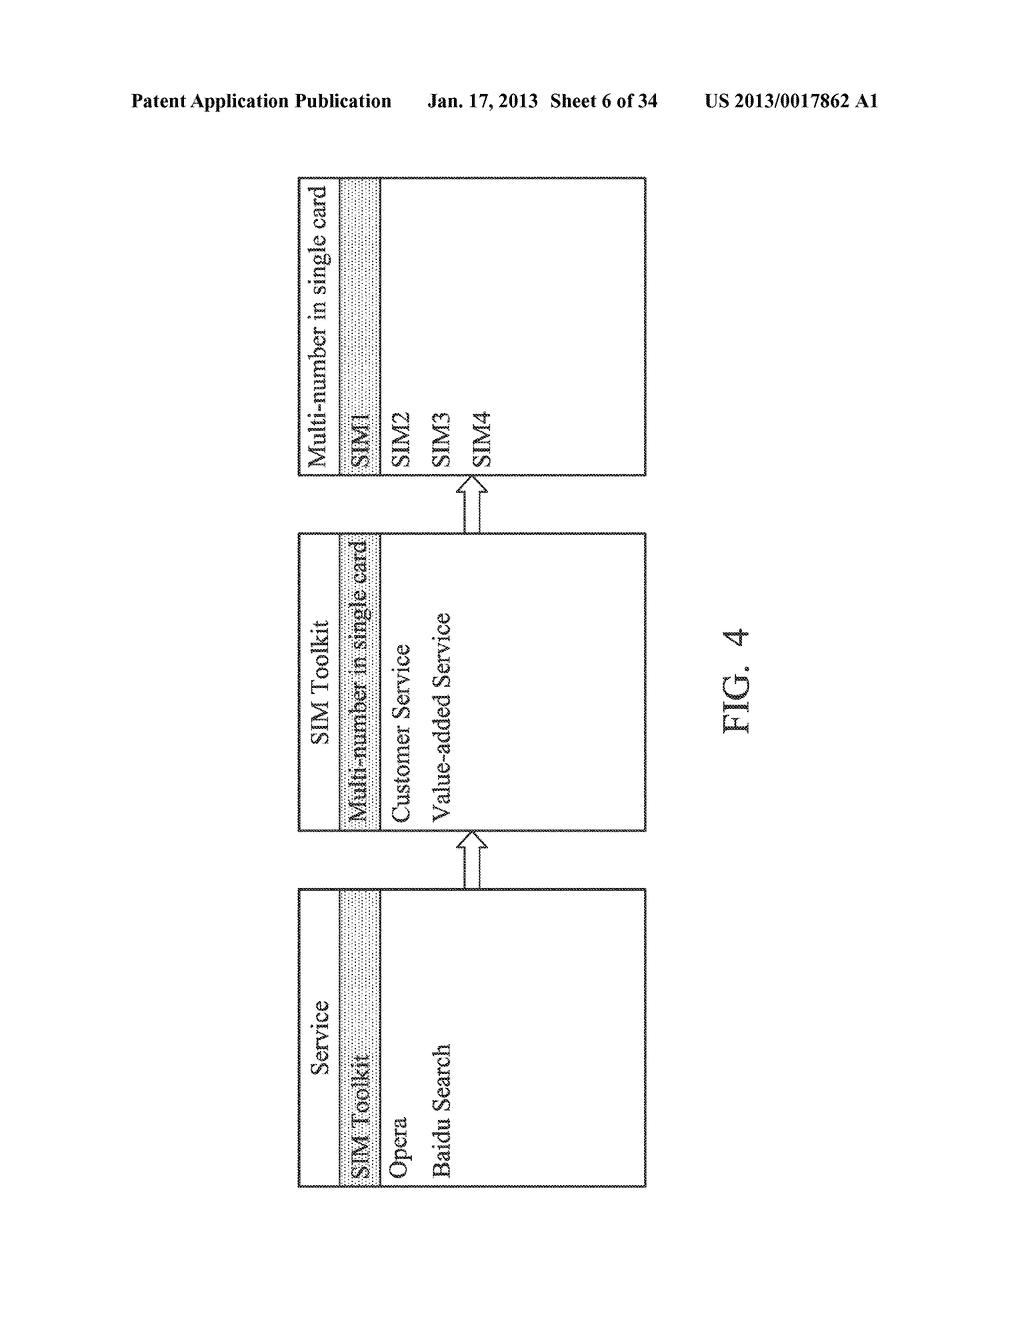 APPARATUSES AND METHODS FOR PROVIDING MULTI-STANDBY MODE OF WIRELESS     COMMUNICATIONS USING SINGLE SUBSCRIBER IDENTITY CARD WITH MULTIPLE     SUBSCRIBER NUMBERSAANM Lee; Chih-HungAACI Kaohsiung CityAACO TWAAGP Lee; Chih-Hung Kaohsiung City TWAANM Wu; Min-JuAACI Kaohsiung CityAACO TWAAGP Wu; Min-Ju Kaohsiung City TWAANM Chang; Nai-HsinAACI Taichung CityAACO TWAAGP Chang; Nai-Hsin Taichung City TWAANM Liu; Jen-ChienAACI New Taipei CityAACO TWAAGP Liu; Jen-Chien New Taipei City TW - diagram, schematic, and image 07